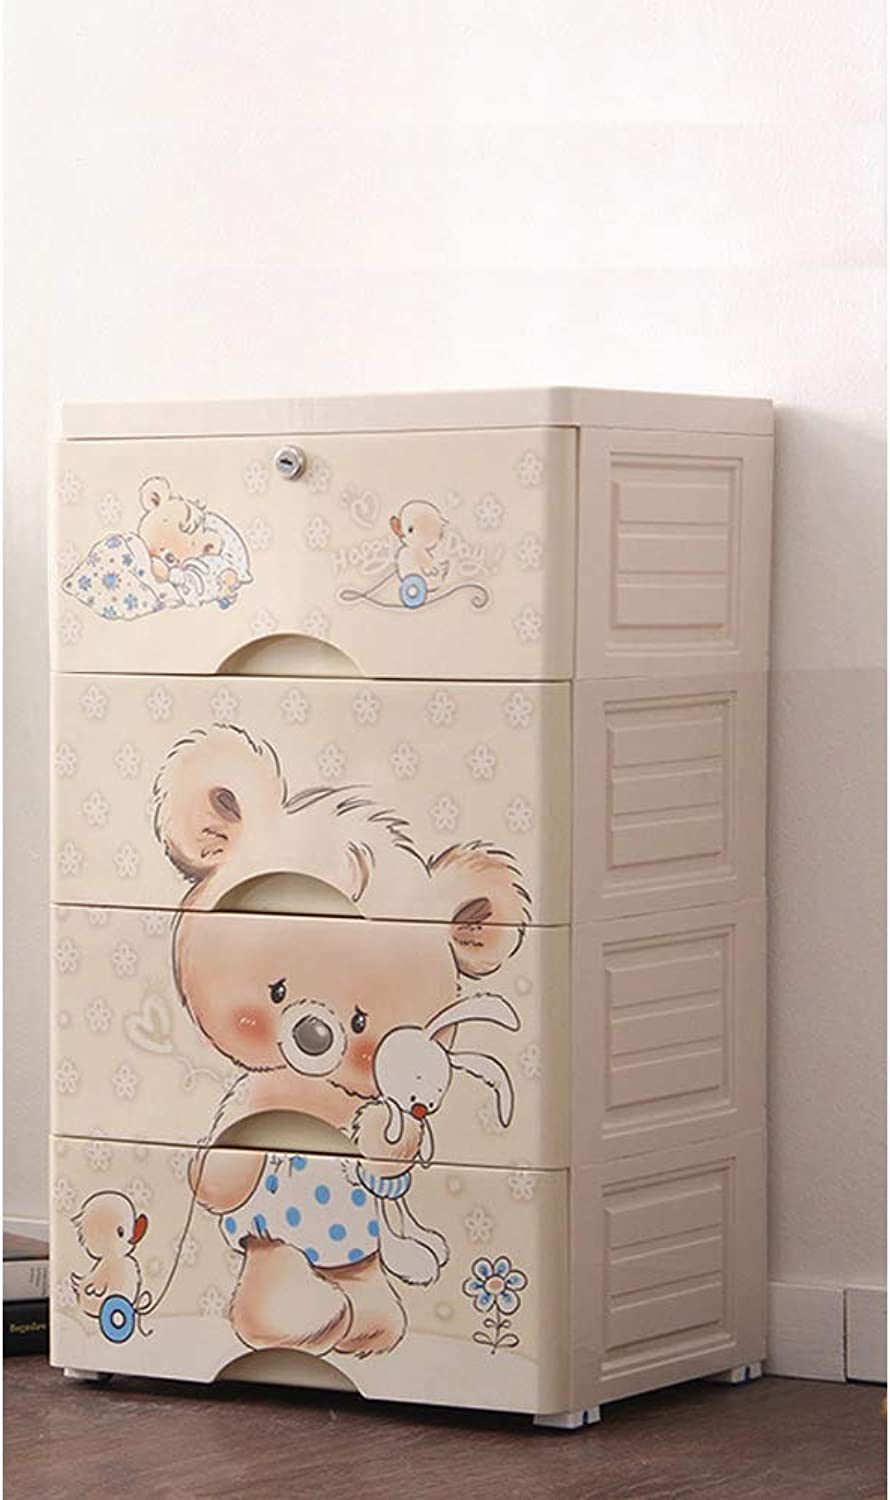 Plastic Cartoon Wardrobe Sealed Khaki Storage Box Storage Box Storage Accessory Toy Large Capacity Clothes Key Diapers etc. with casters Storage case Convenient Goods Four Stages